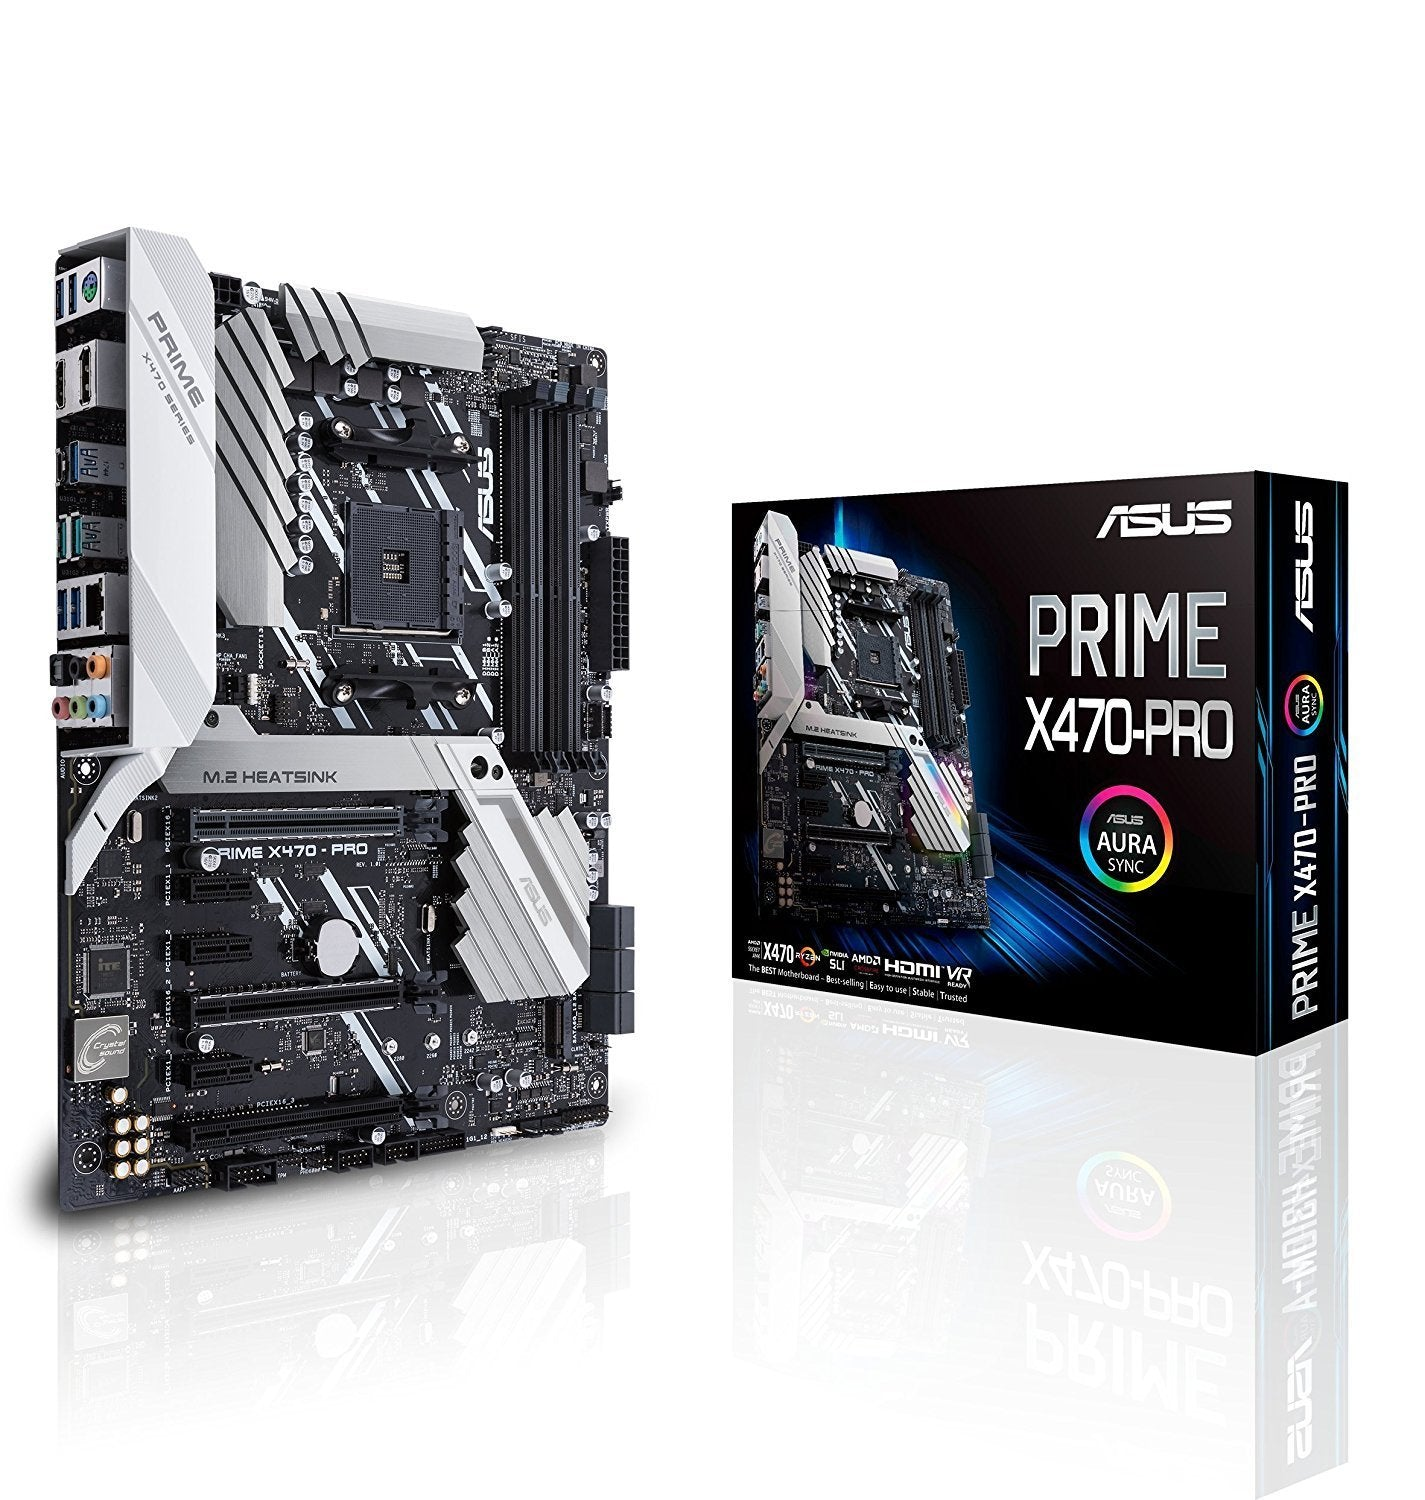 Asus Prime X470-Pro - AMD ATX Motherboard